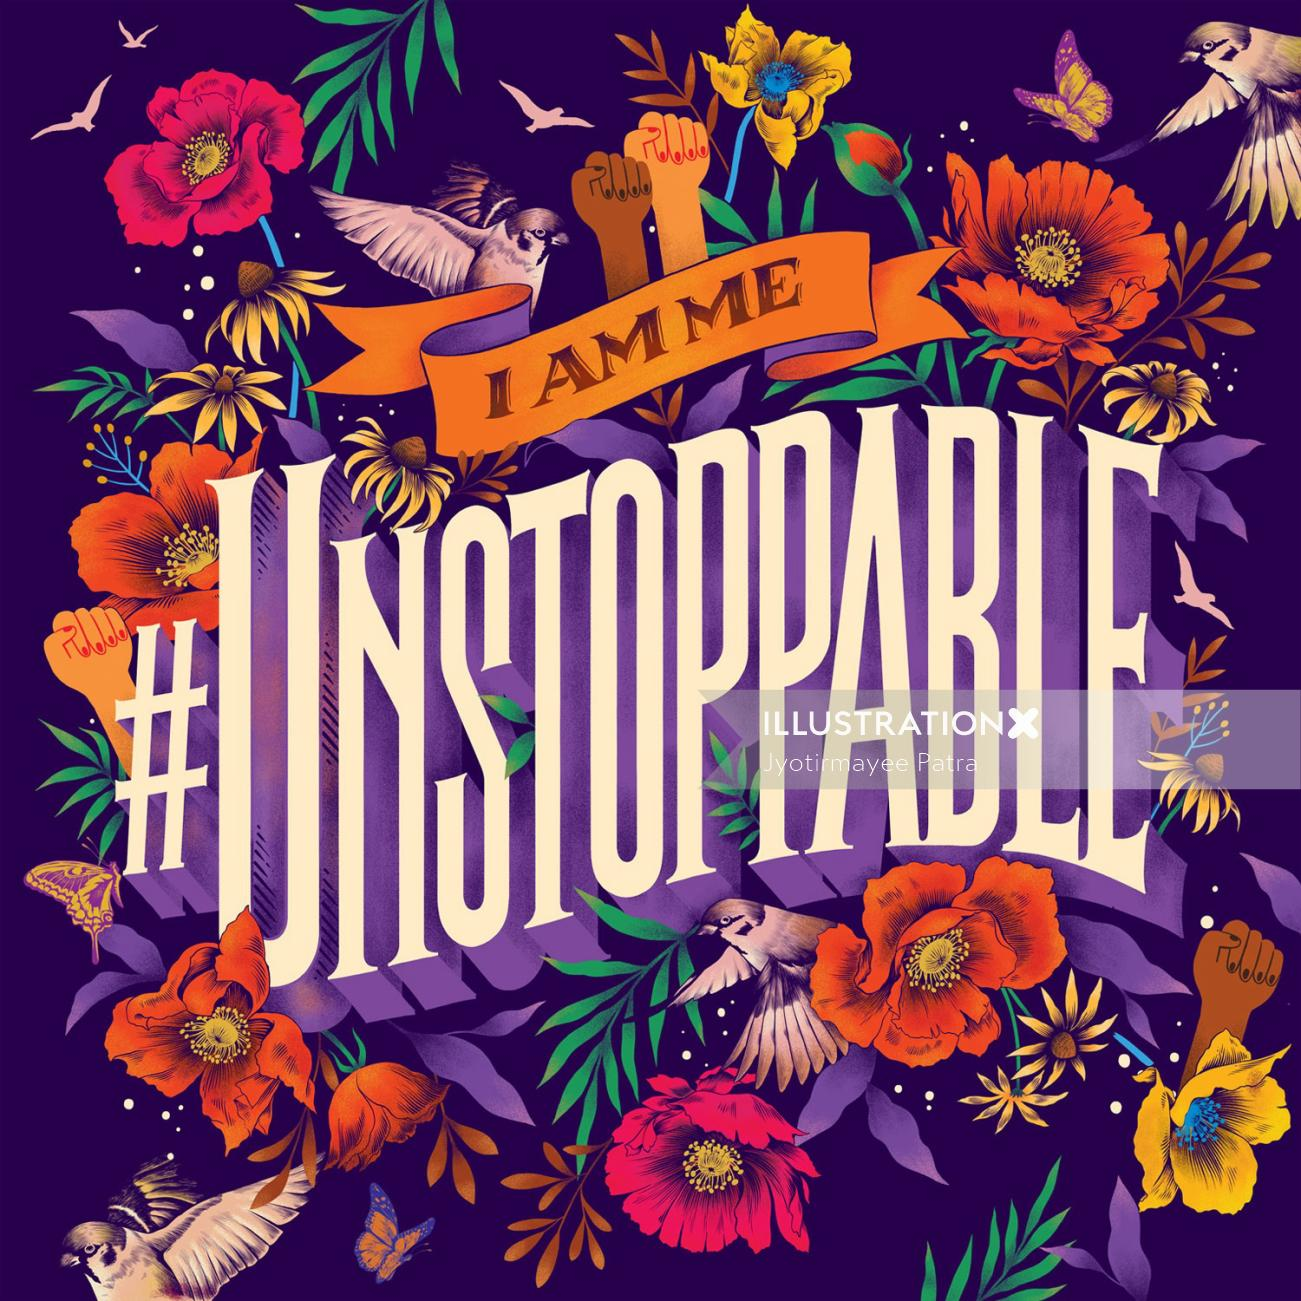 Mural created for Ananya Birla's brand new single called 'Unstoppable'.